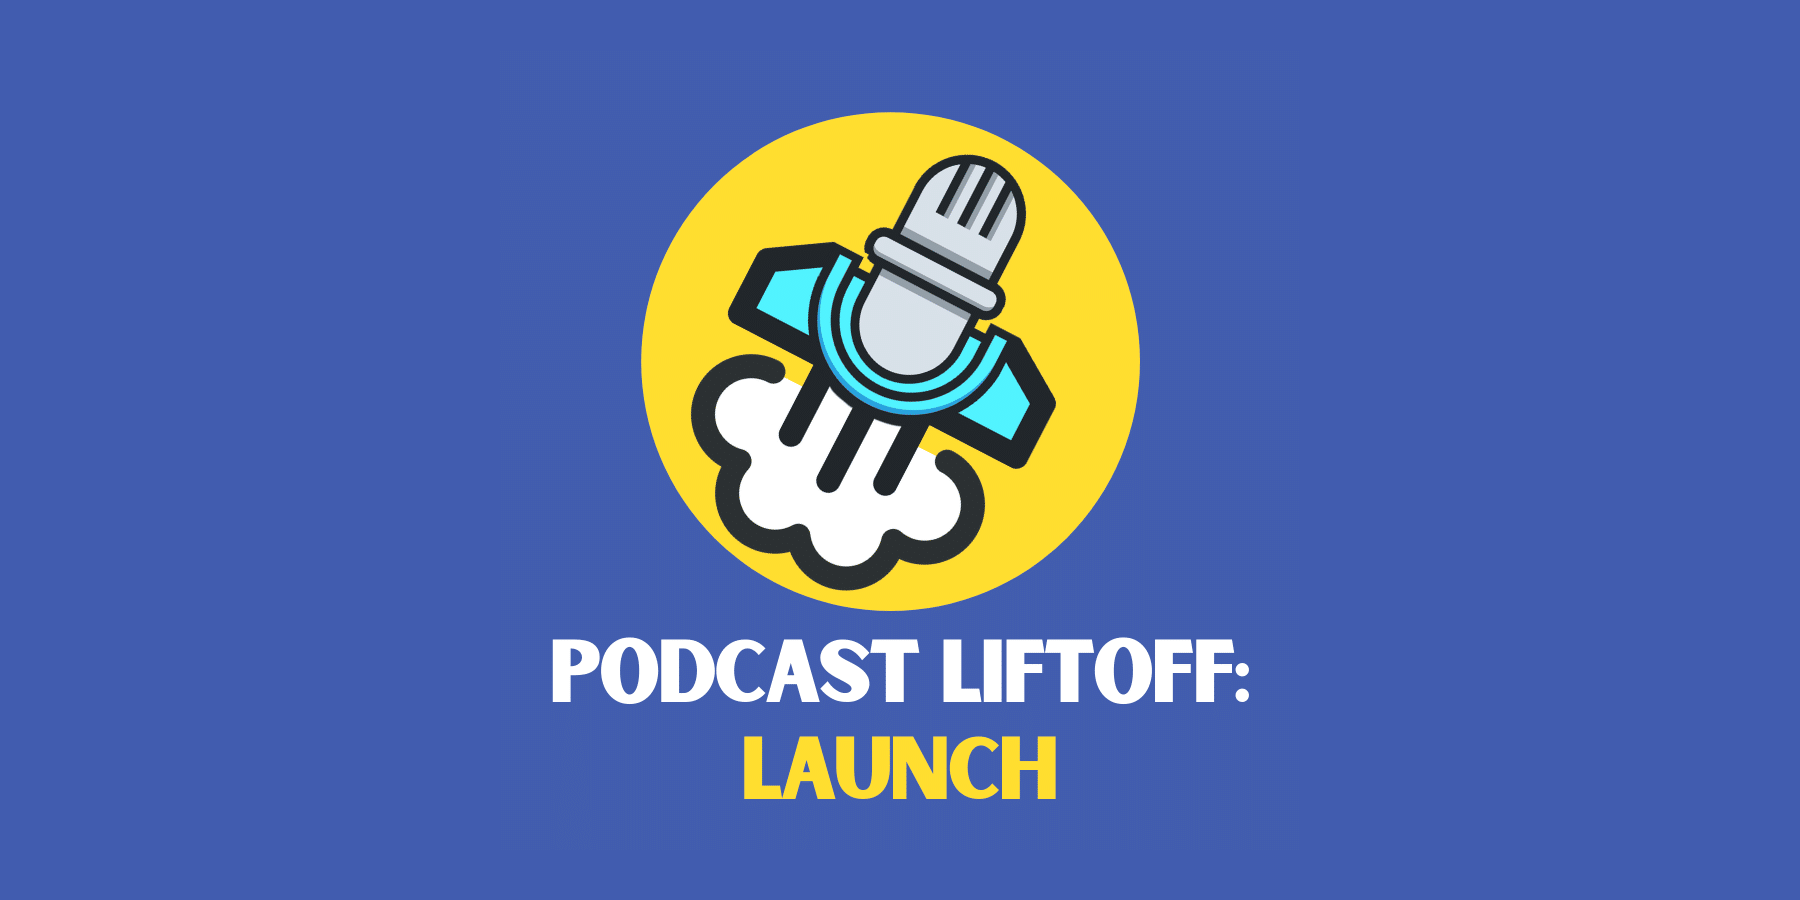 Podcast Liftoff - Launch